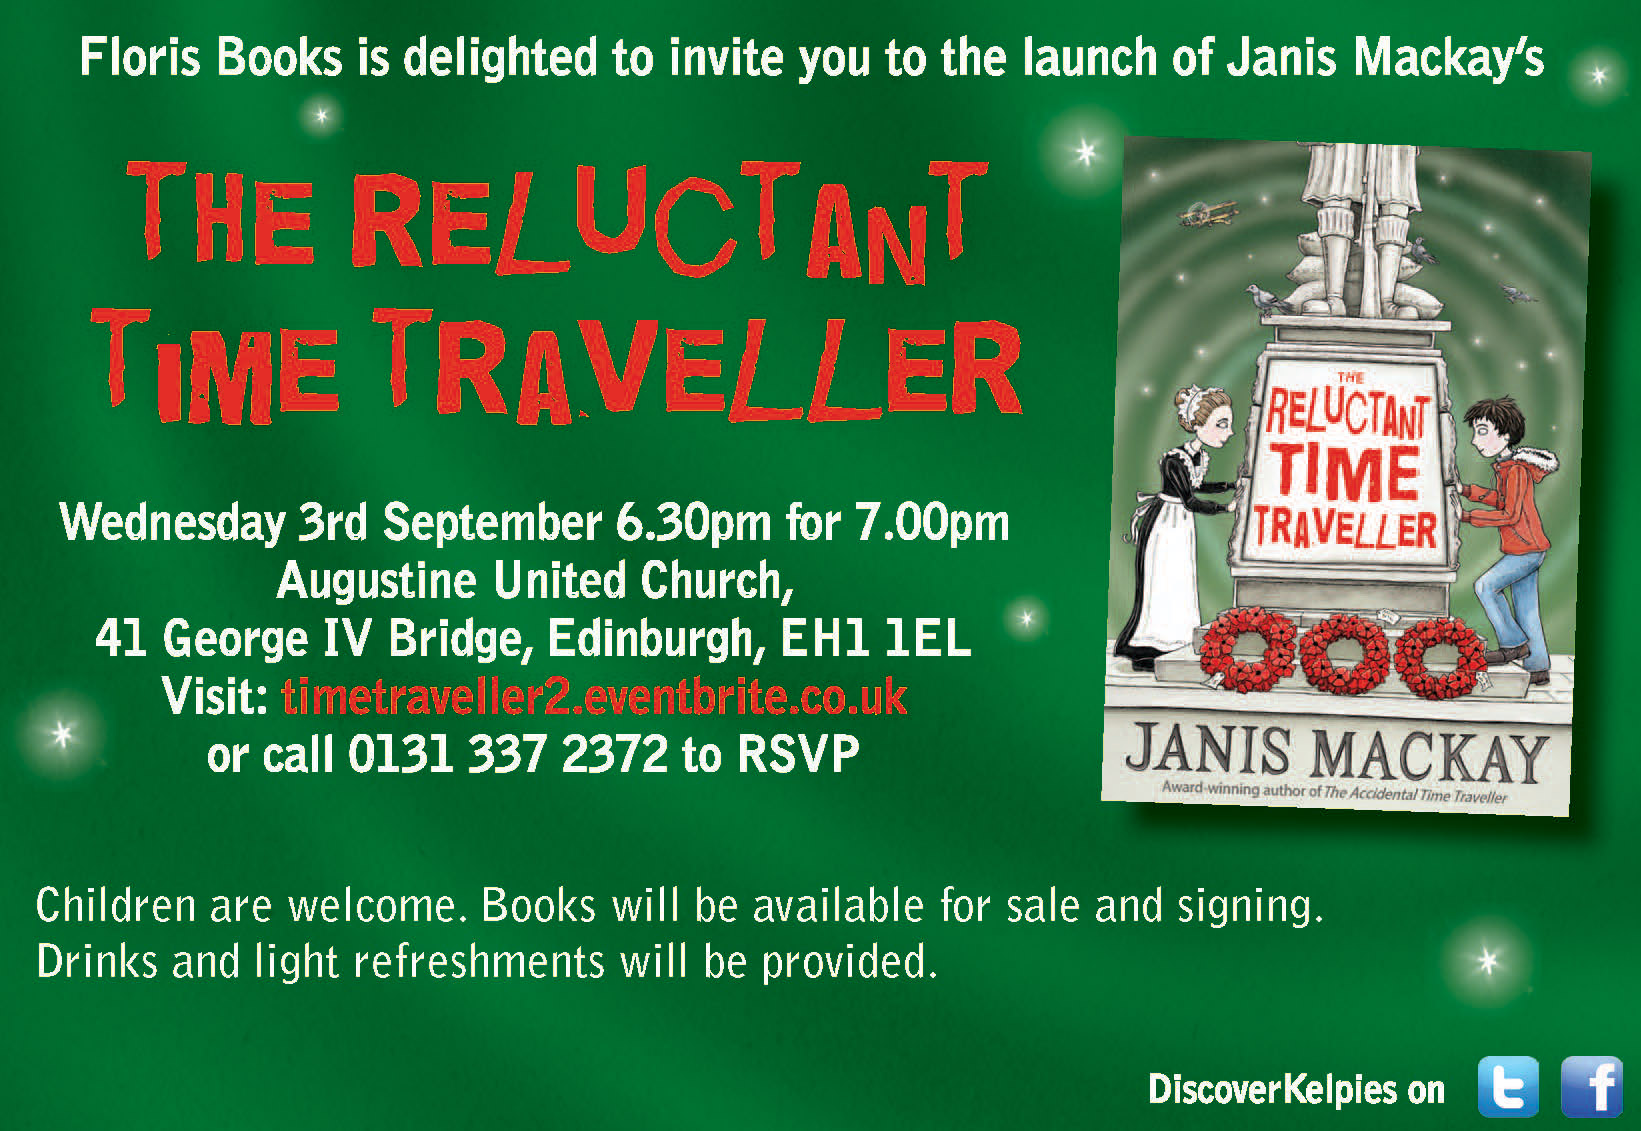 The Reluctant Time Traveller Launch Invitation